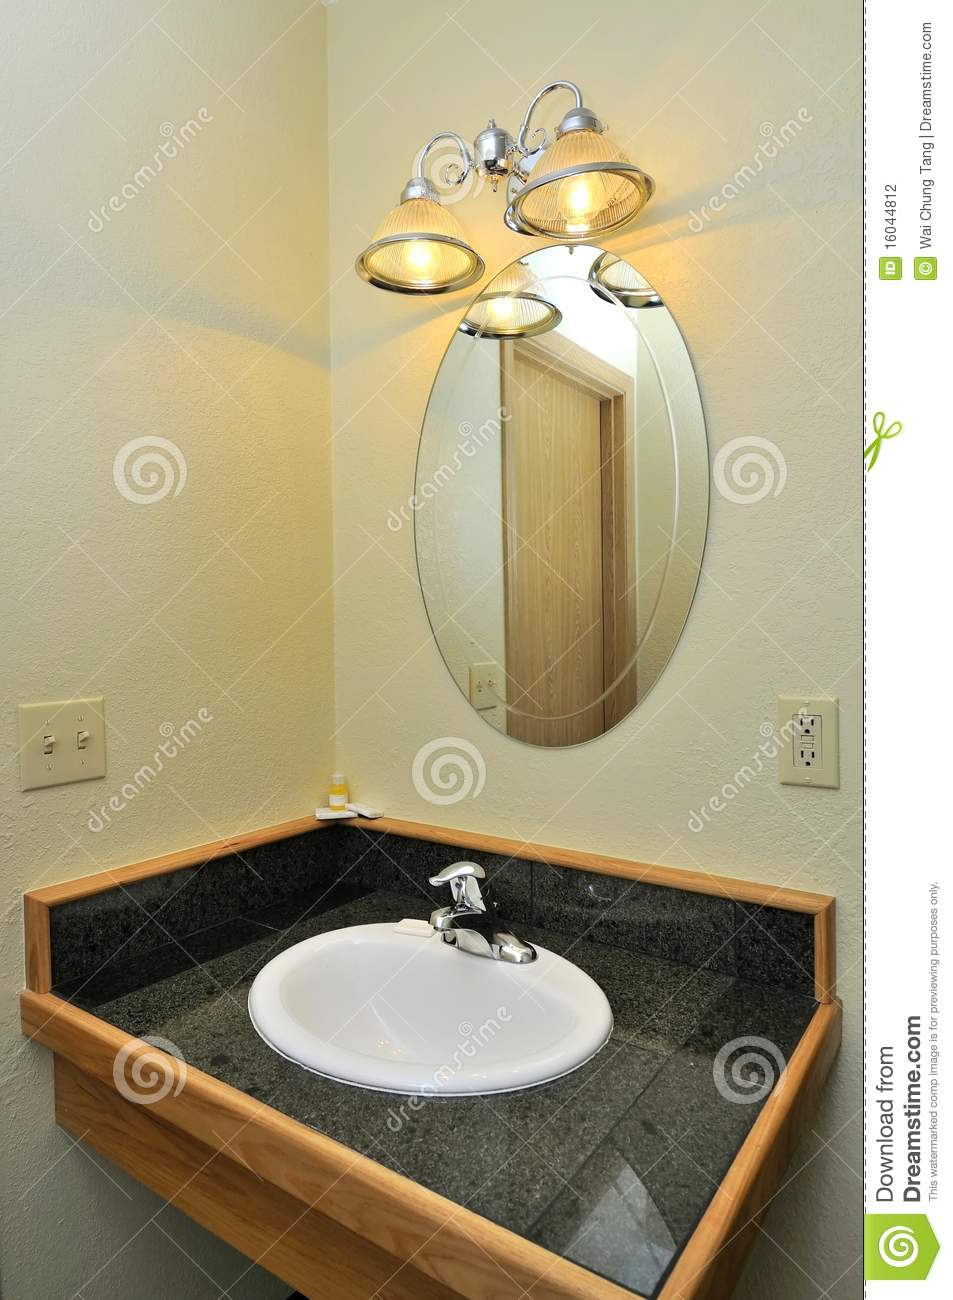 Wash basin and mirror stock photography image 16044812 for Wash basin mirror price